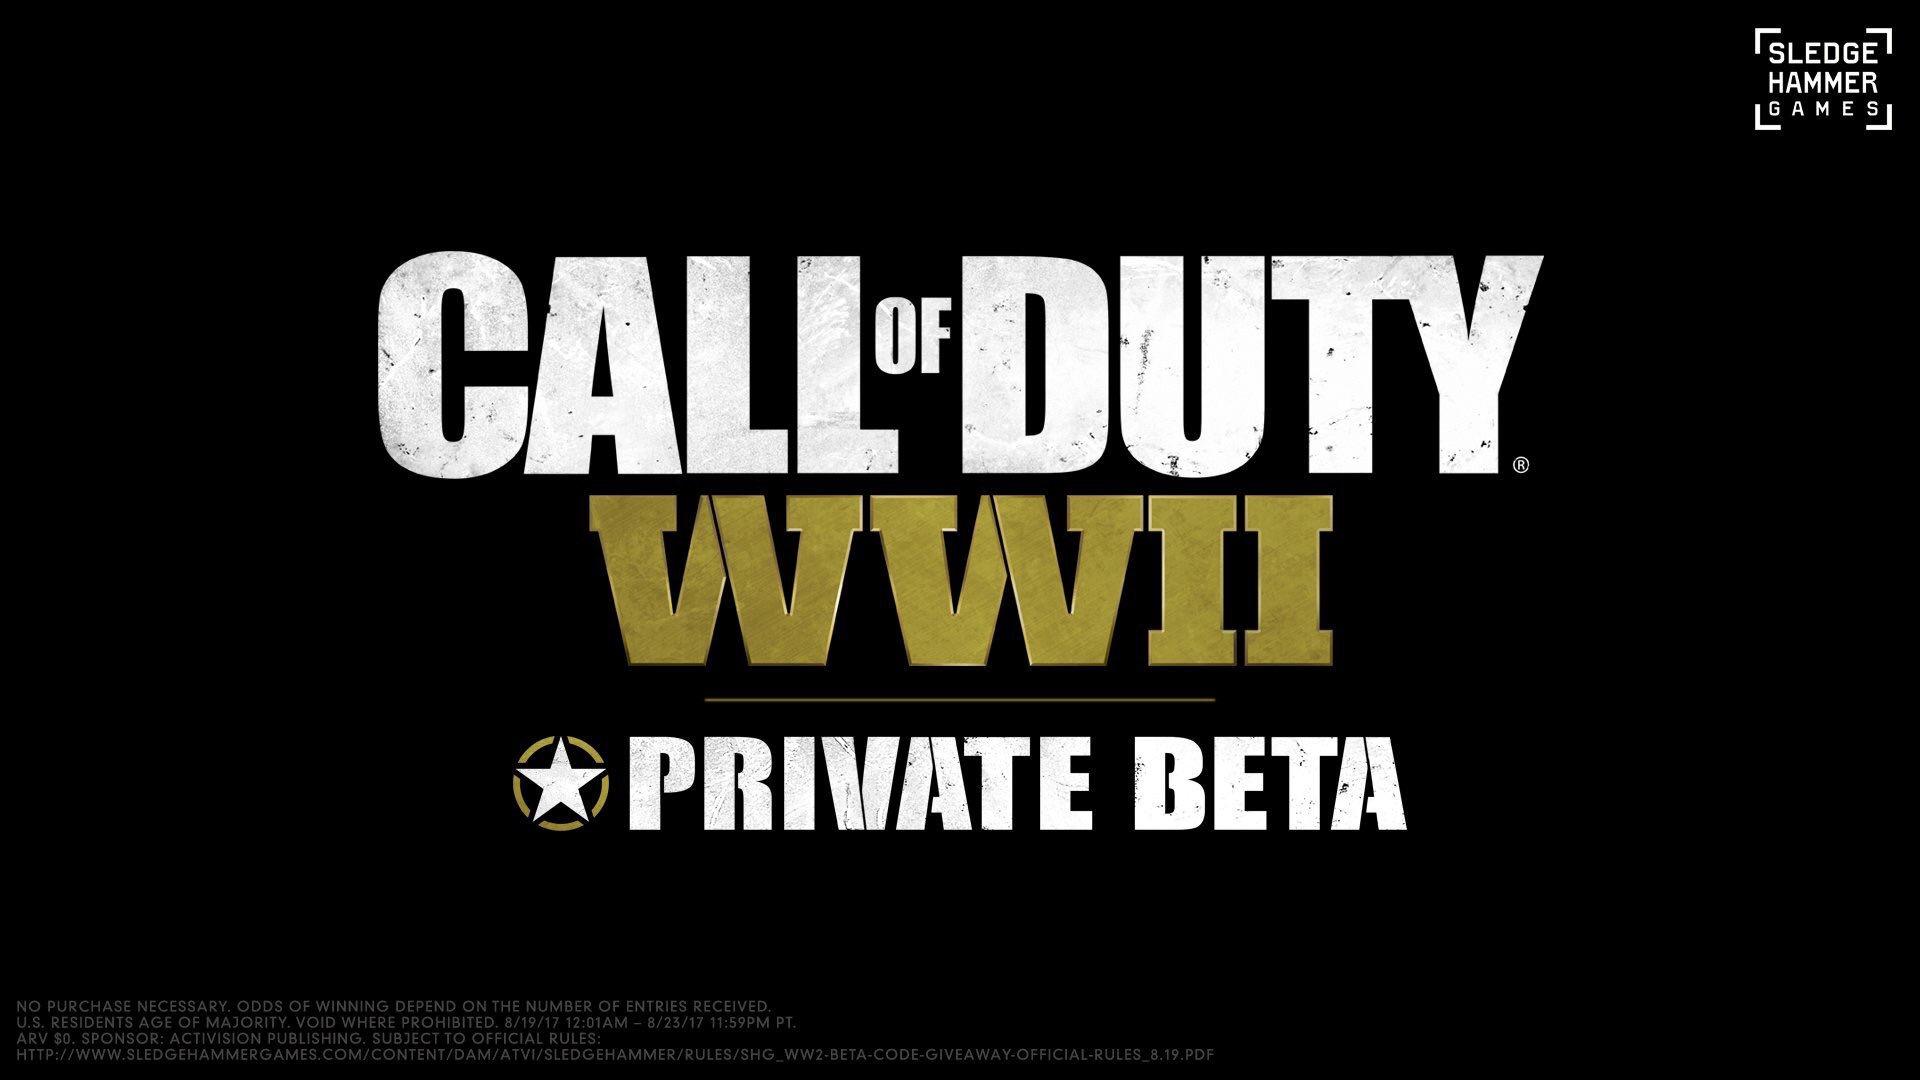 We're giving away 5 more #WWIIBeta codes today. RT by 4PM PT for a chance to win one! Rules: https://t.co/HSyUb5QLln https://t.co/N123FkaCDh